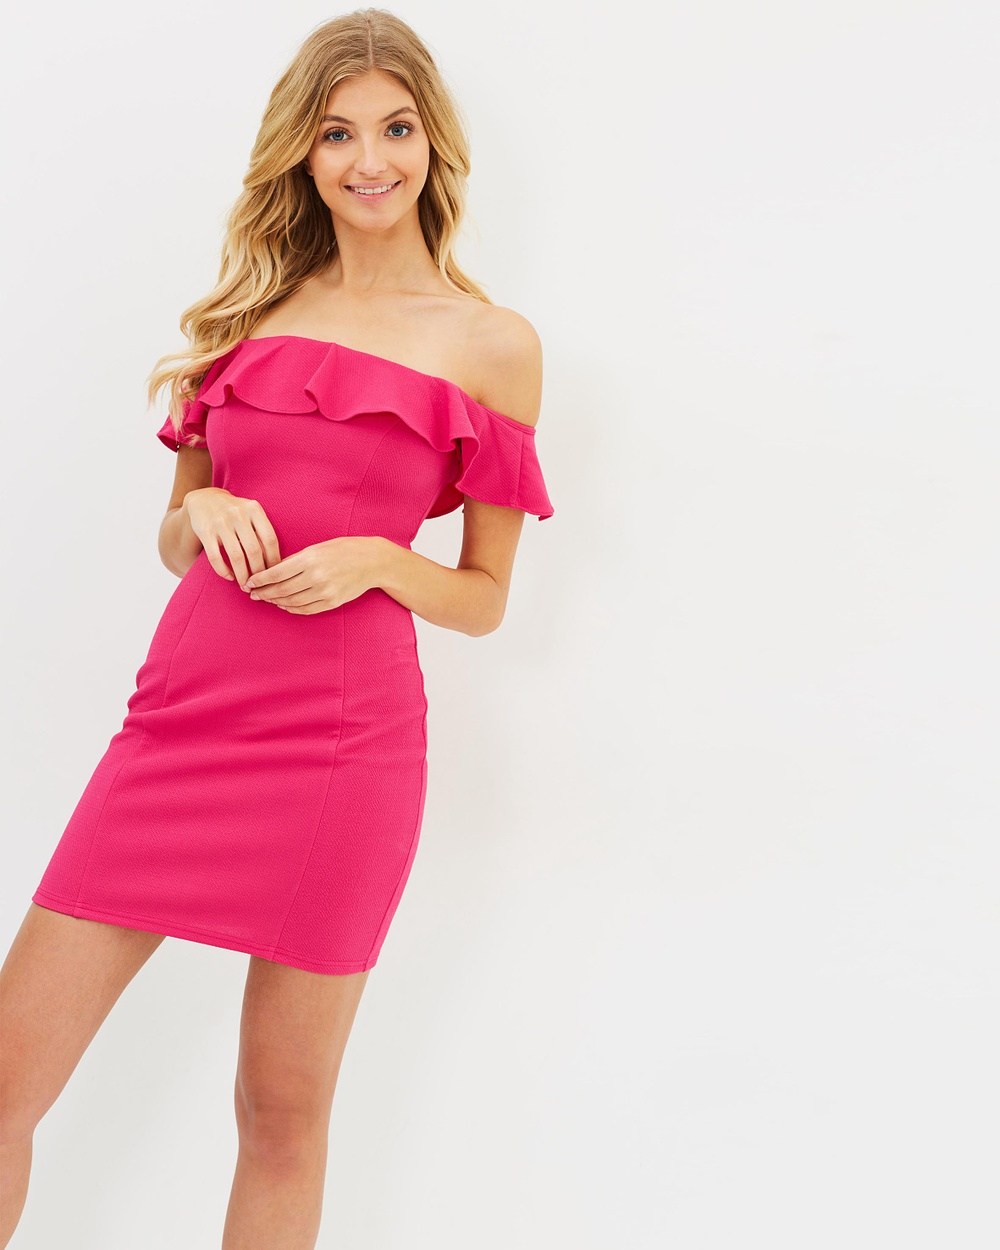 Atmos & Here ICONIC EXCLUSIVE Gisella Off Shoulder Dress Bodycon Dresses Fuchsia ICONIC EXCLUSIVE Gisella Off-Shoulder Dress